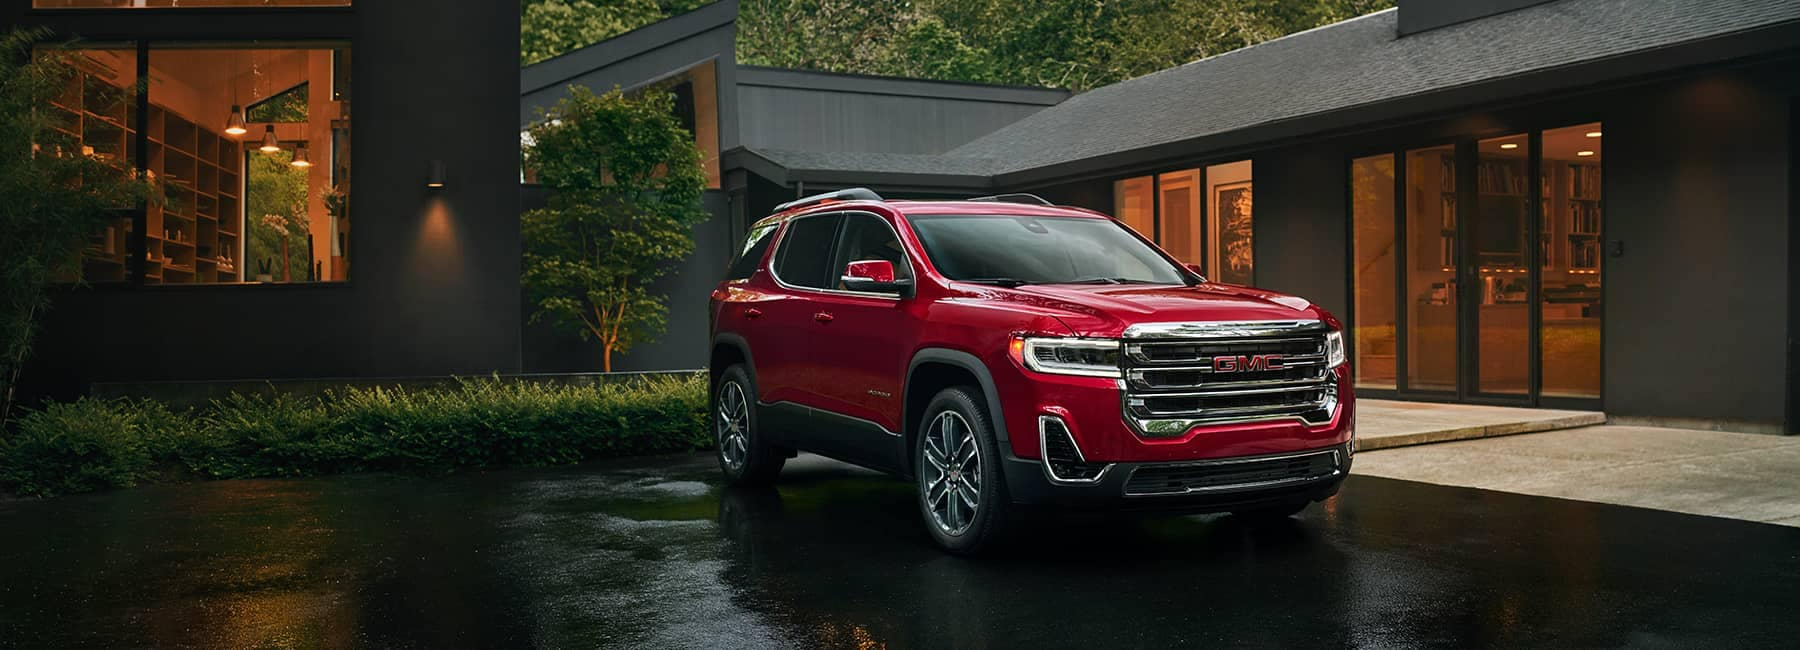 Red 2020 GMC Acadia parked in front of home